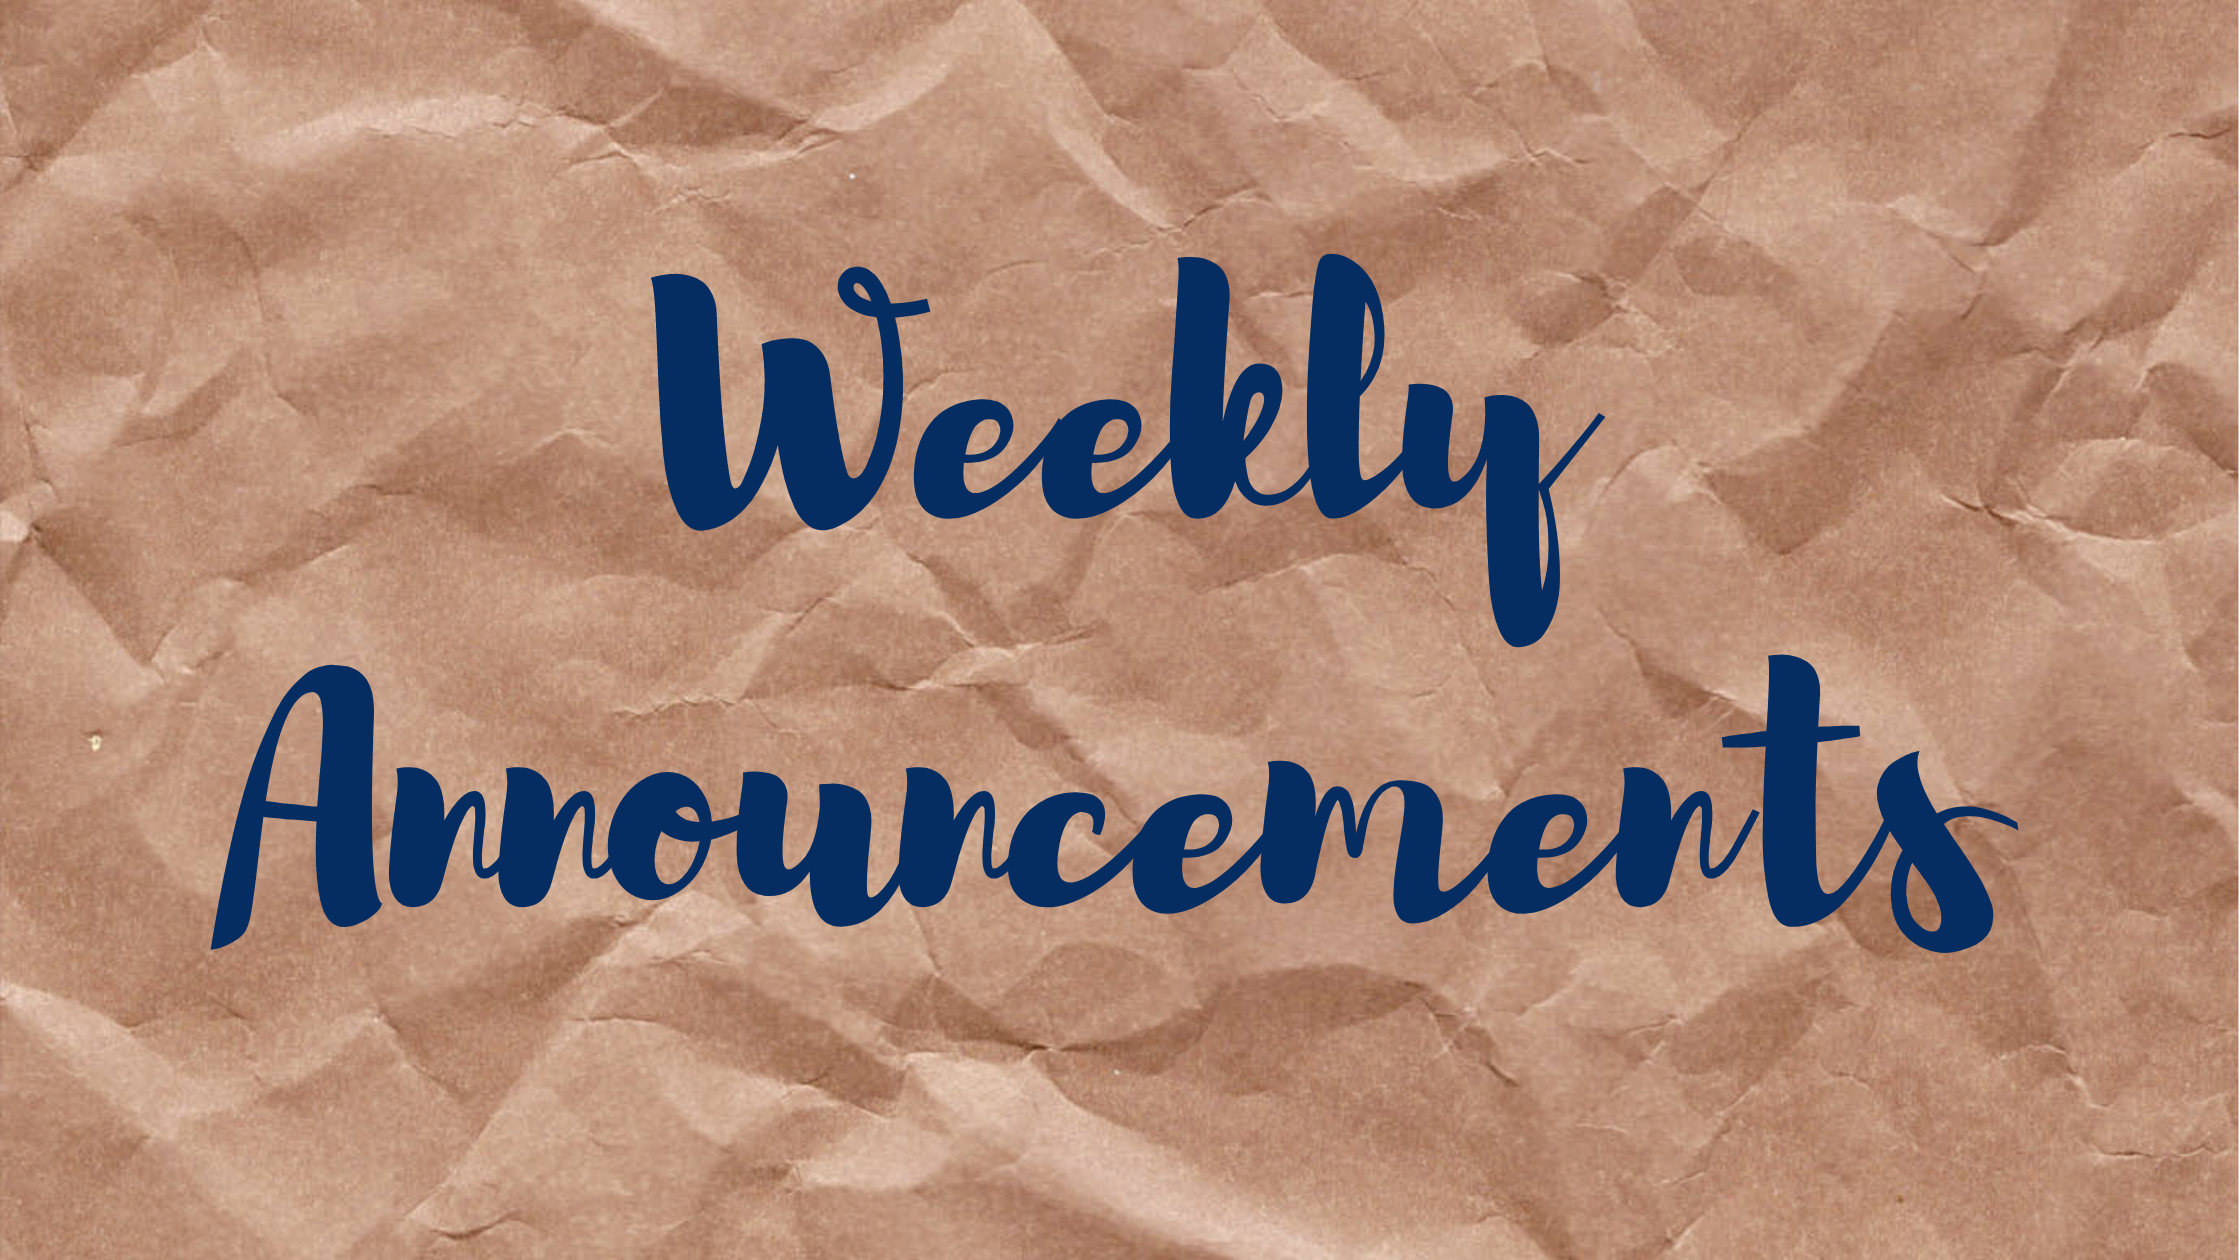 Weekly Announcement Banner